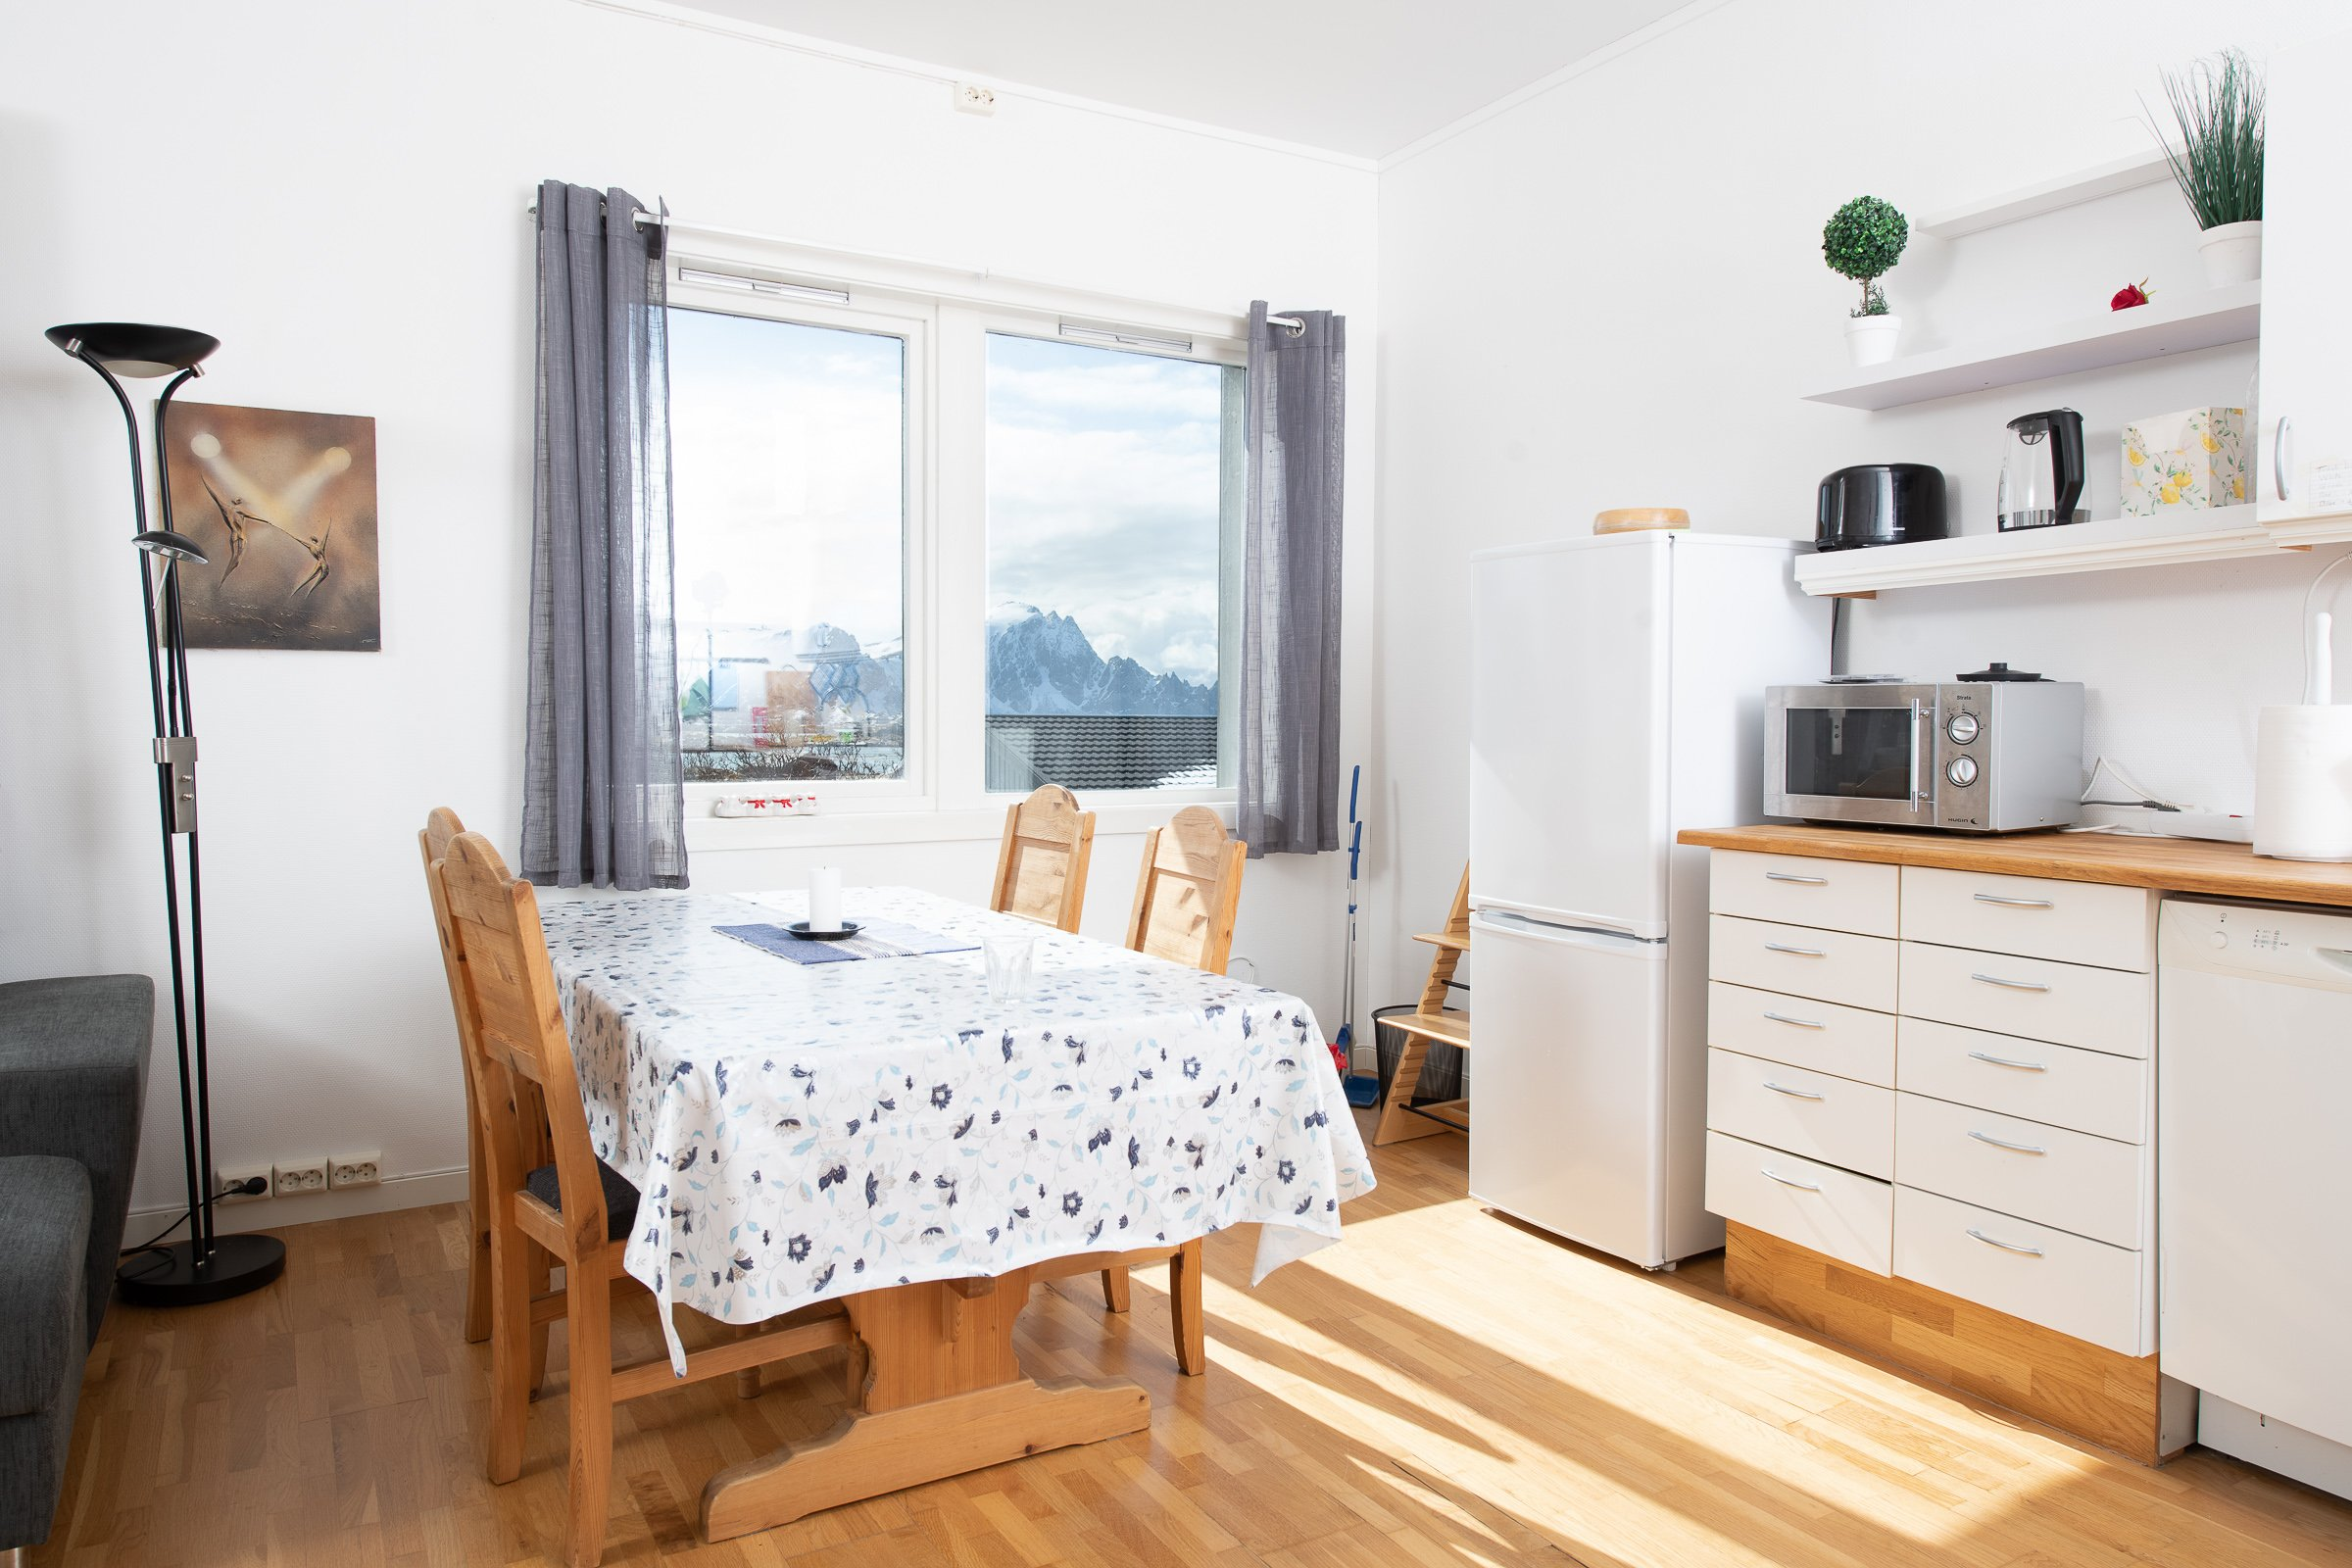 Andenes whale safari, hotell, overnatting, room for rent, Andøya,